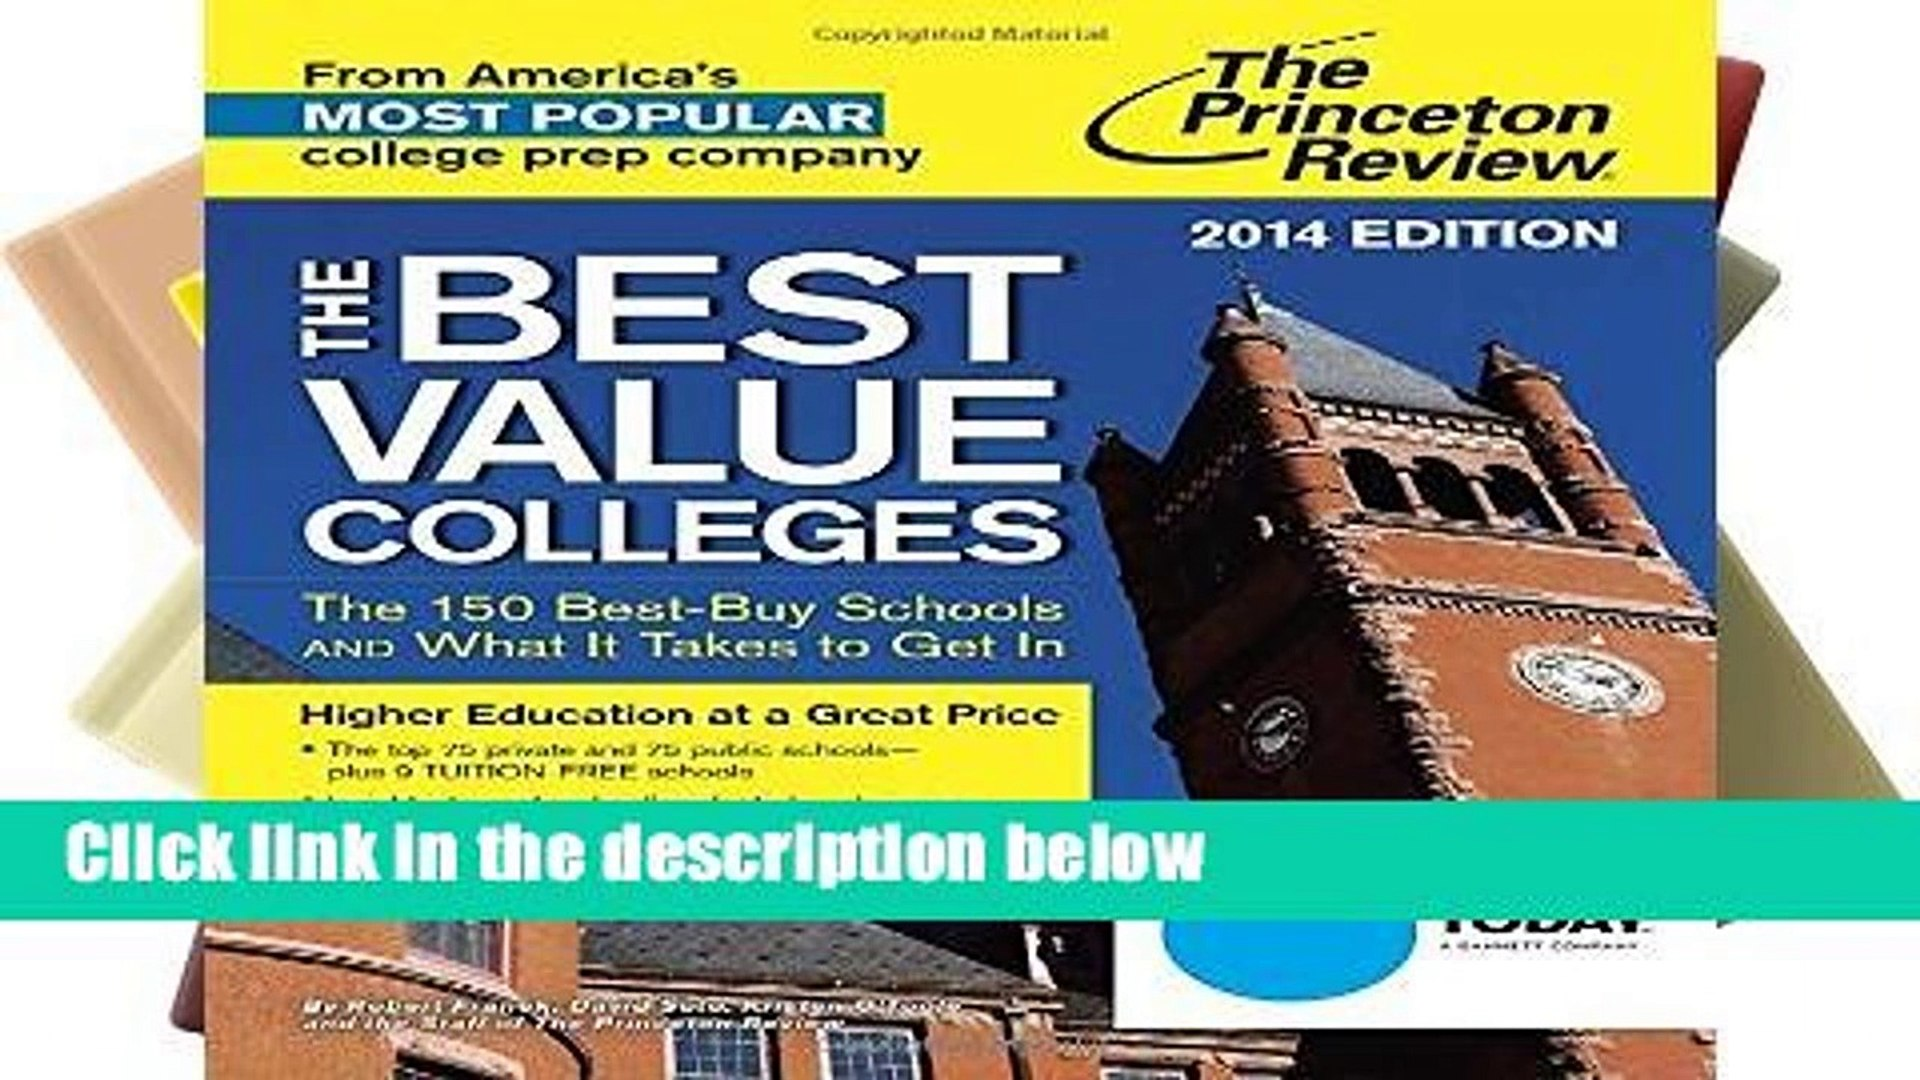 p d f the best value colleges the 150 best buy schools and what it takes to get in colleges video dailymotion dailymotion